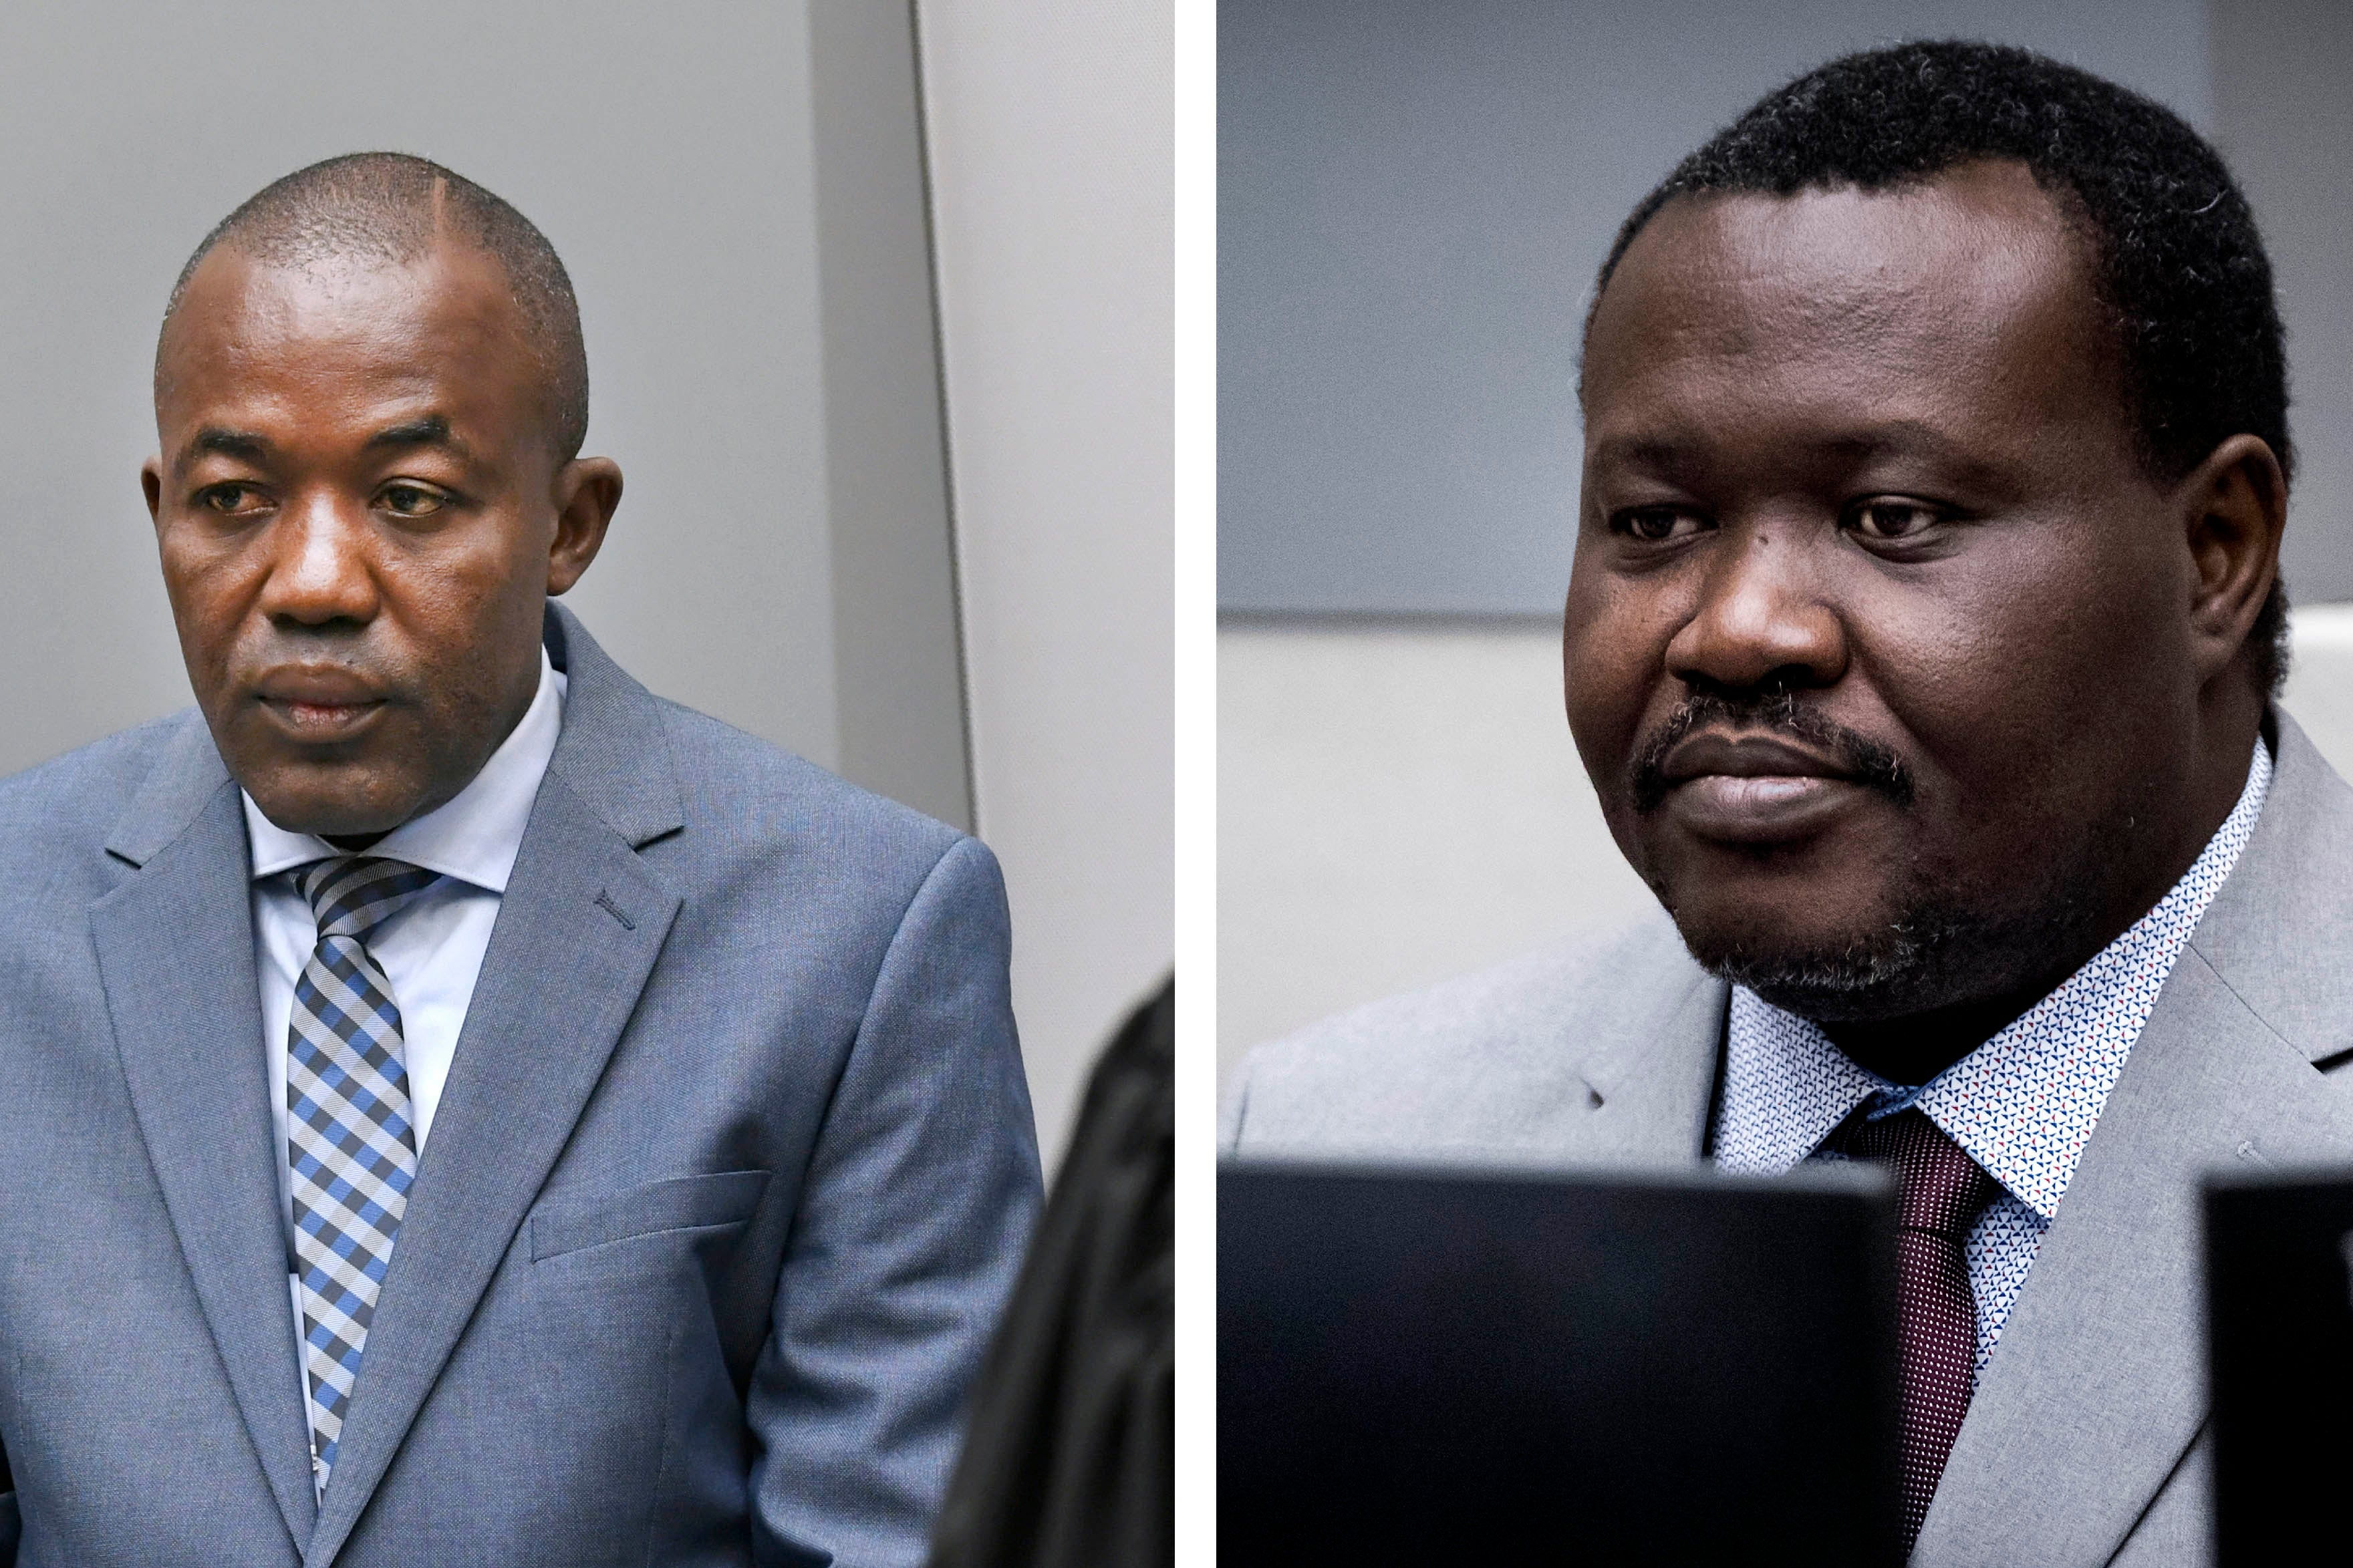 Central African Republic: First Anti-Balaka Trial at ICC